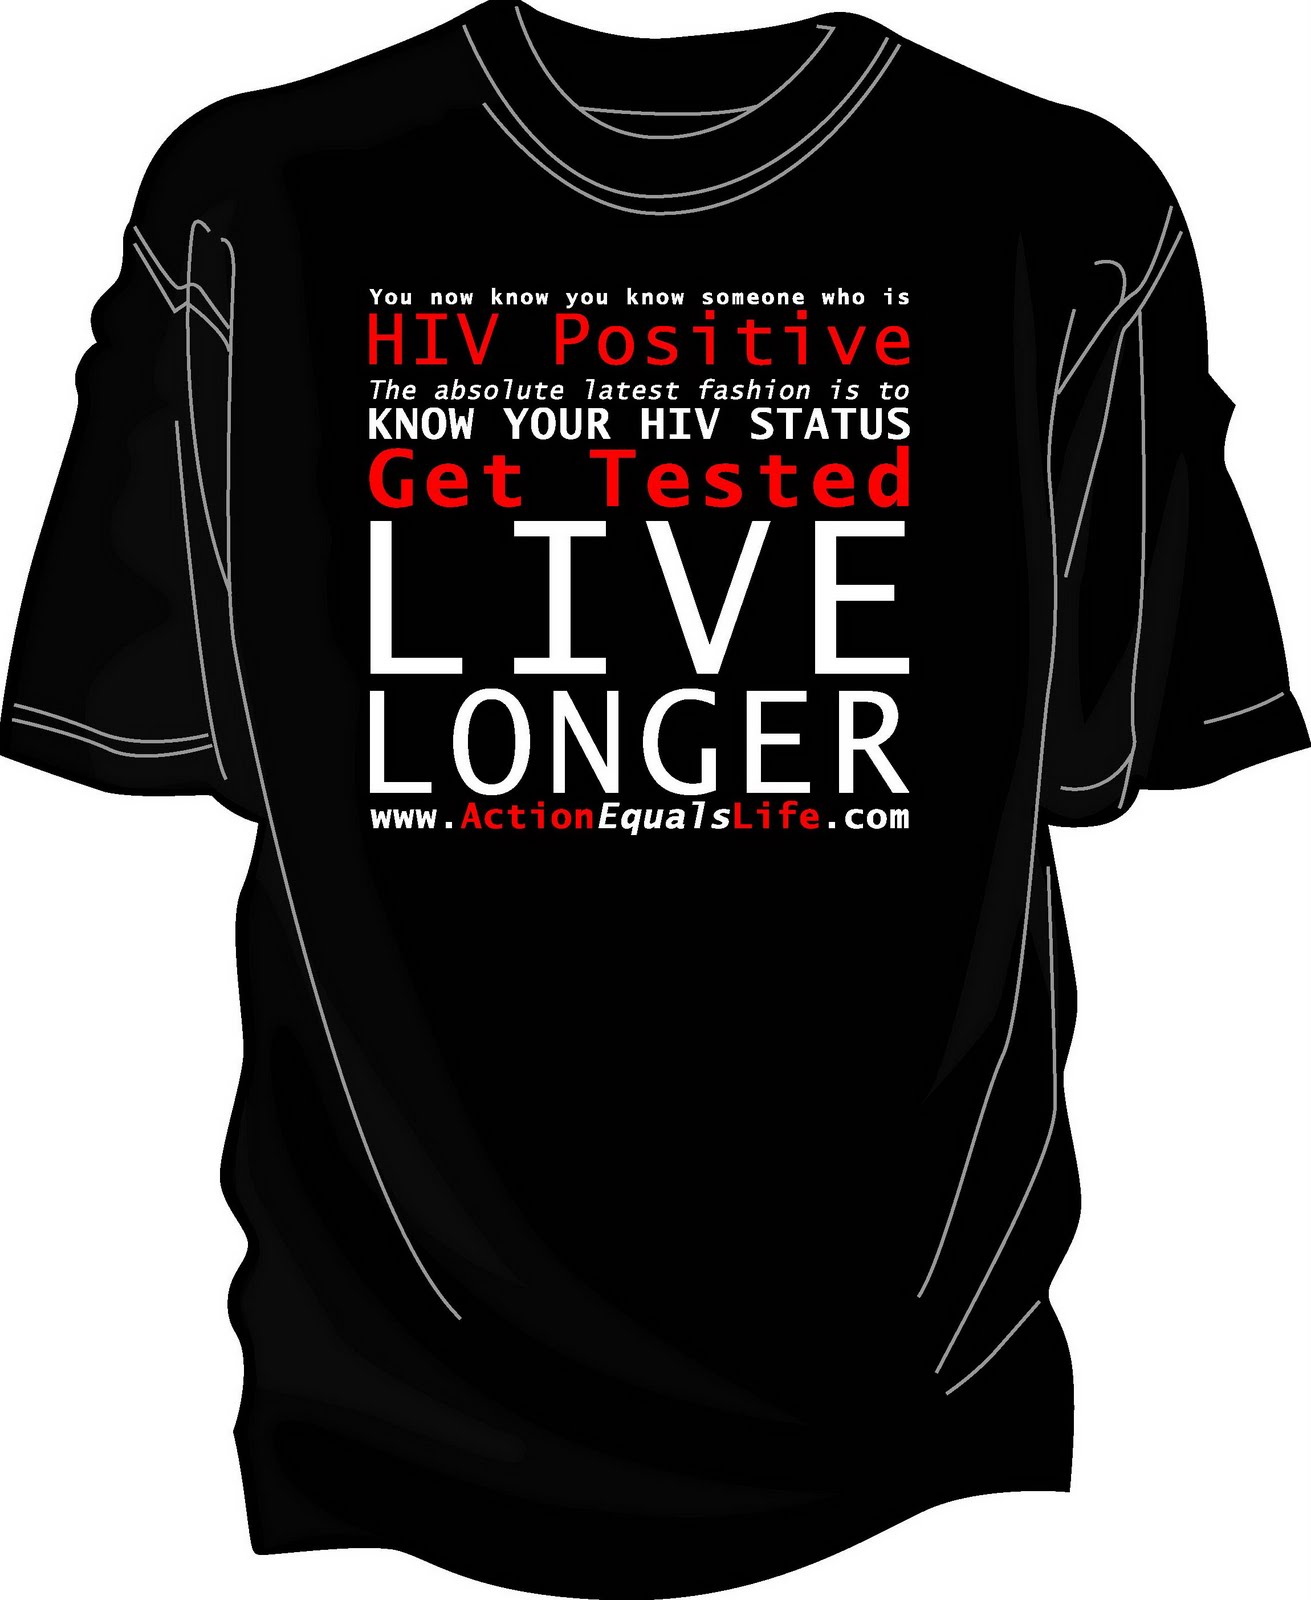 T Shirt Quotes: Quotes And Sayings. Full Of Wisdom And